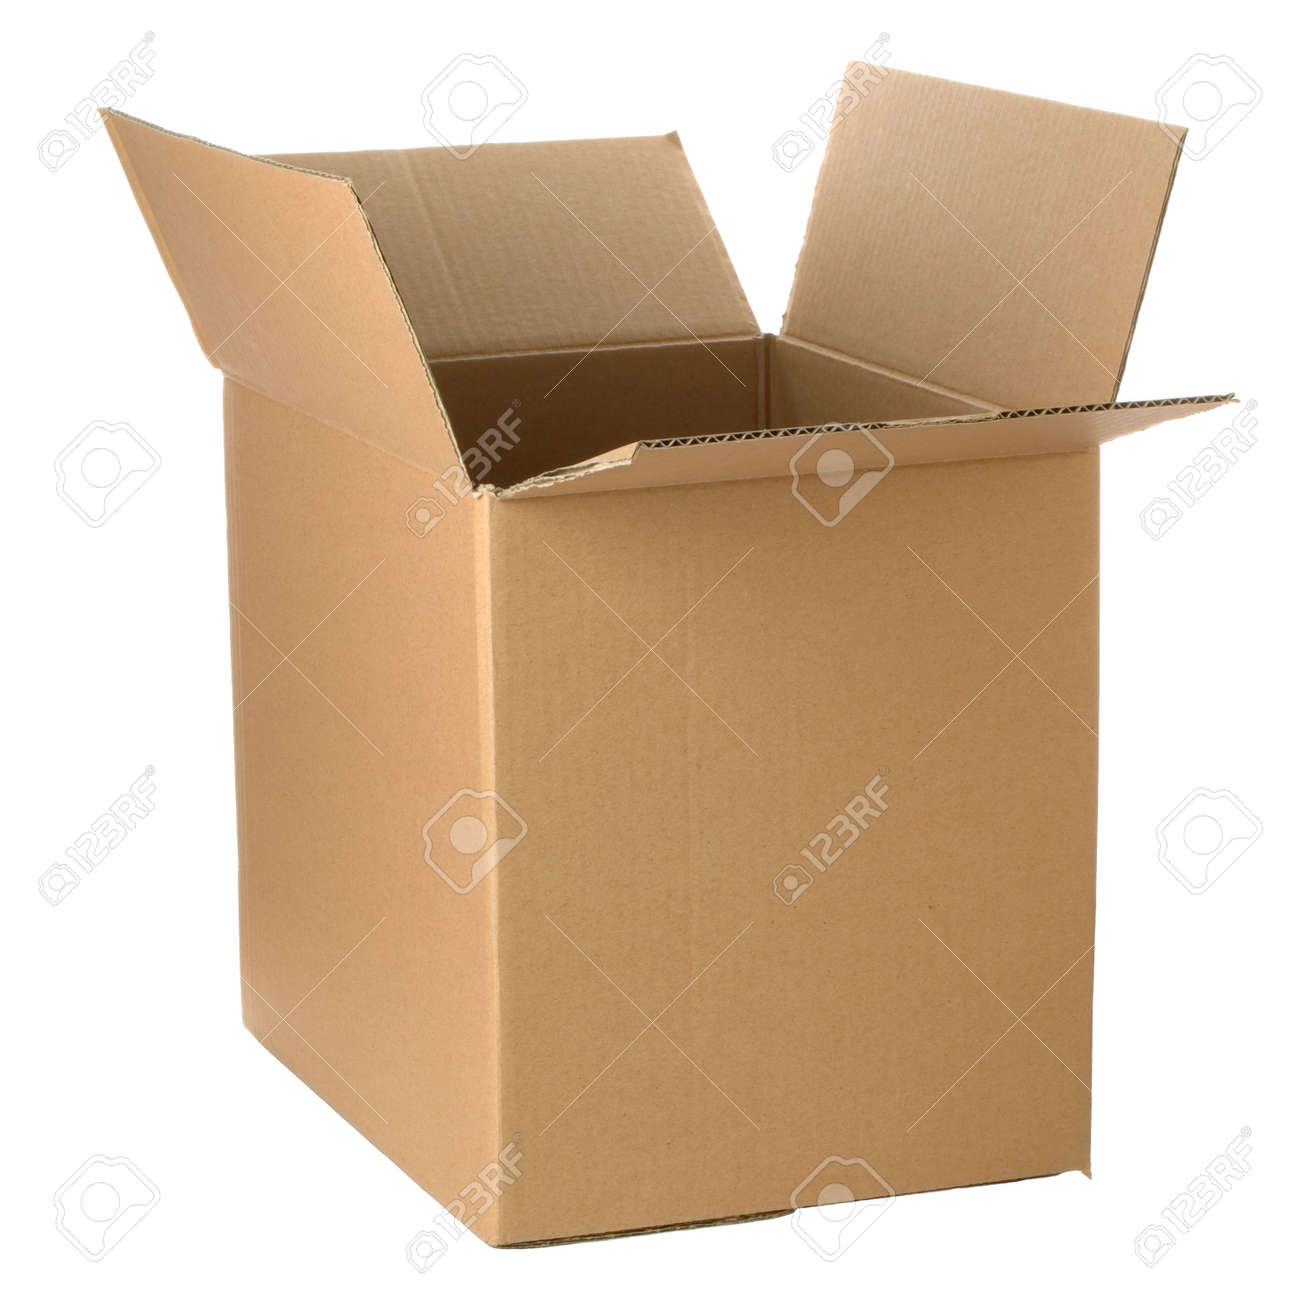 Brown cardboard box, add your own design or logo.  Isolated on white. Stock Photo - 2373637